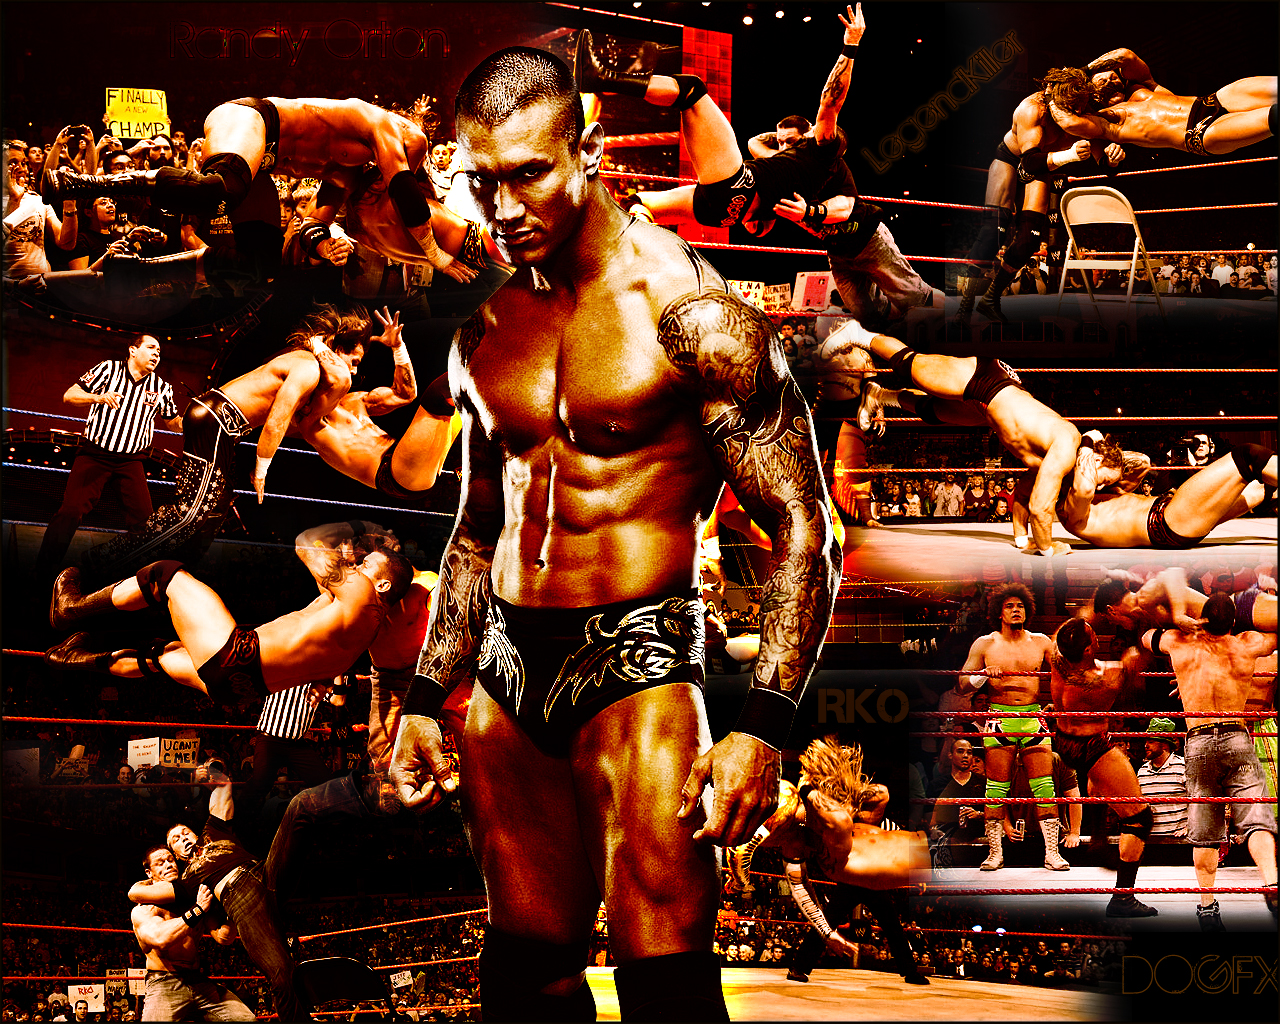 Randy orton   Randy Orton Wallpaper 23569306 1280x1024